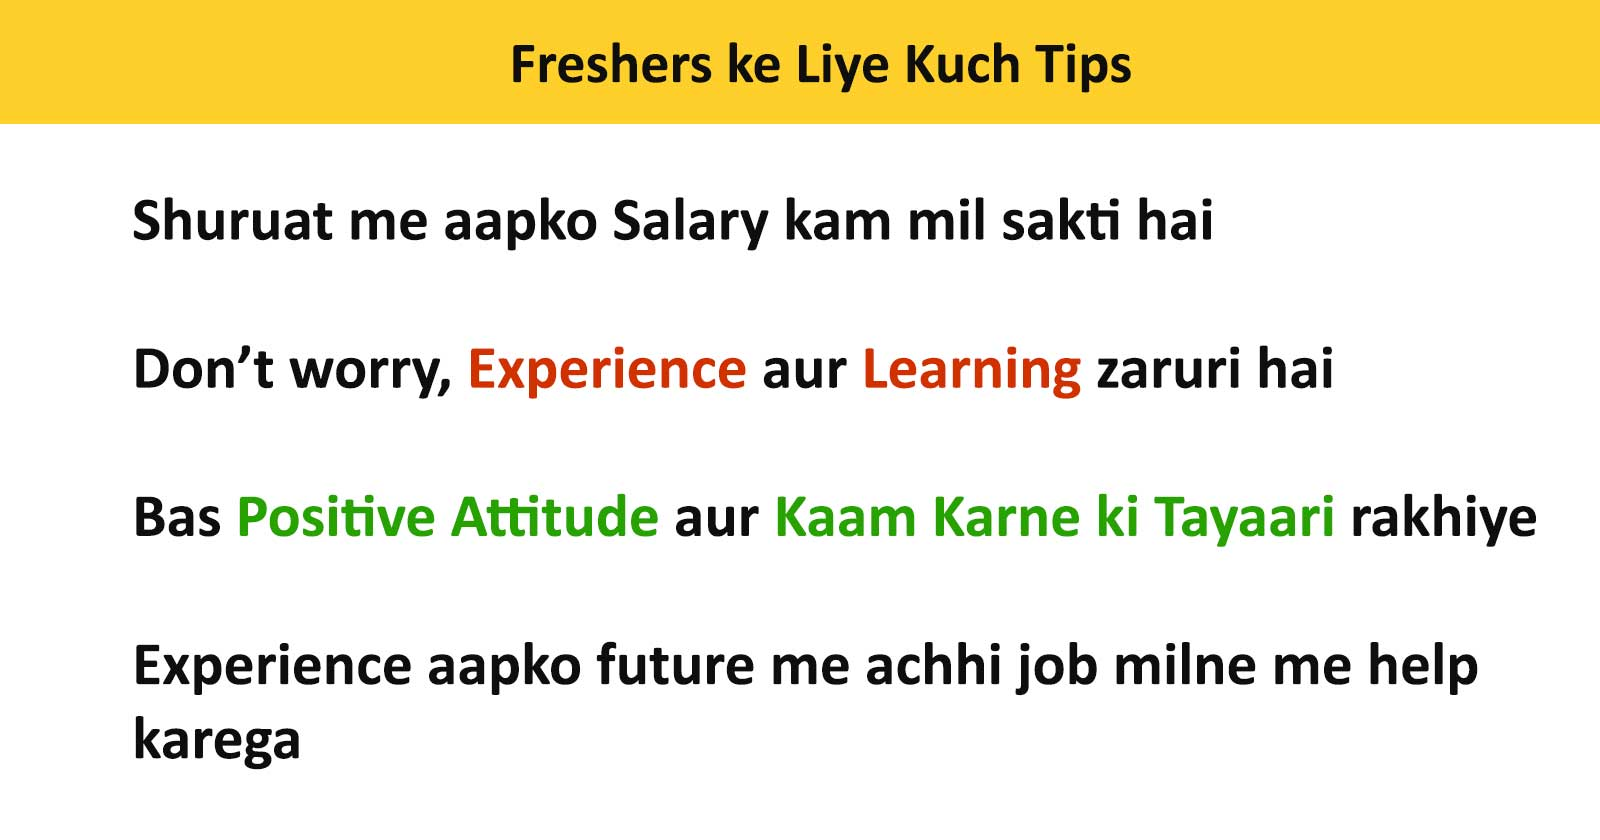 Tips for freshers looking for jobs